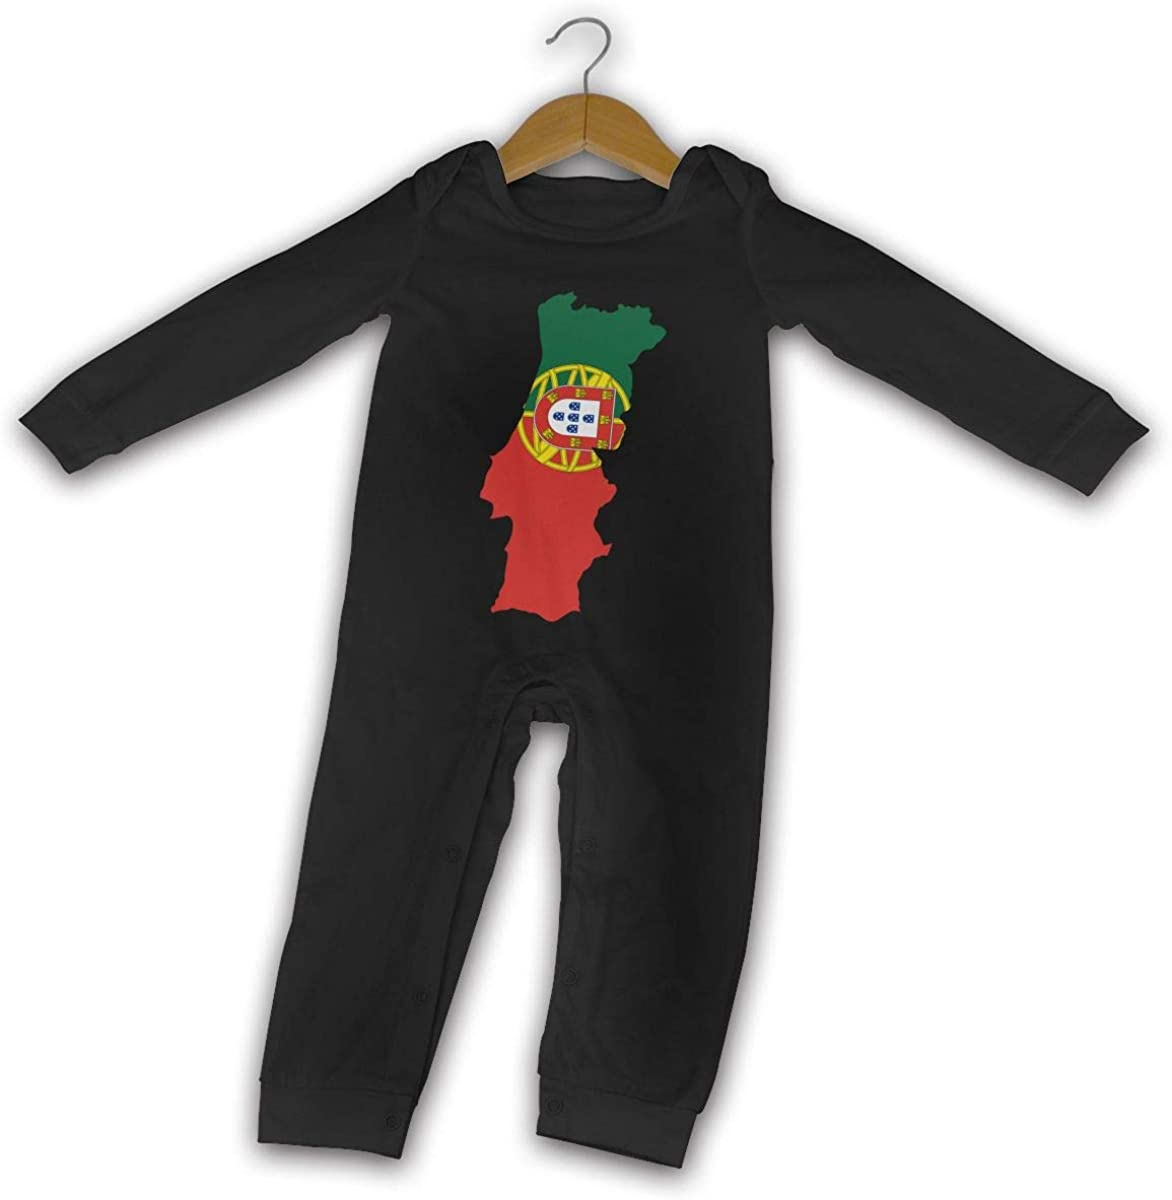 YELTY6F Portugal Map Printed Baby Boys Girls Jumpsuit Long Sleeve Rompers Black